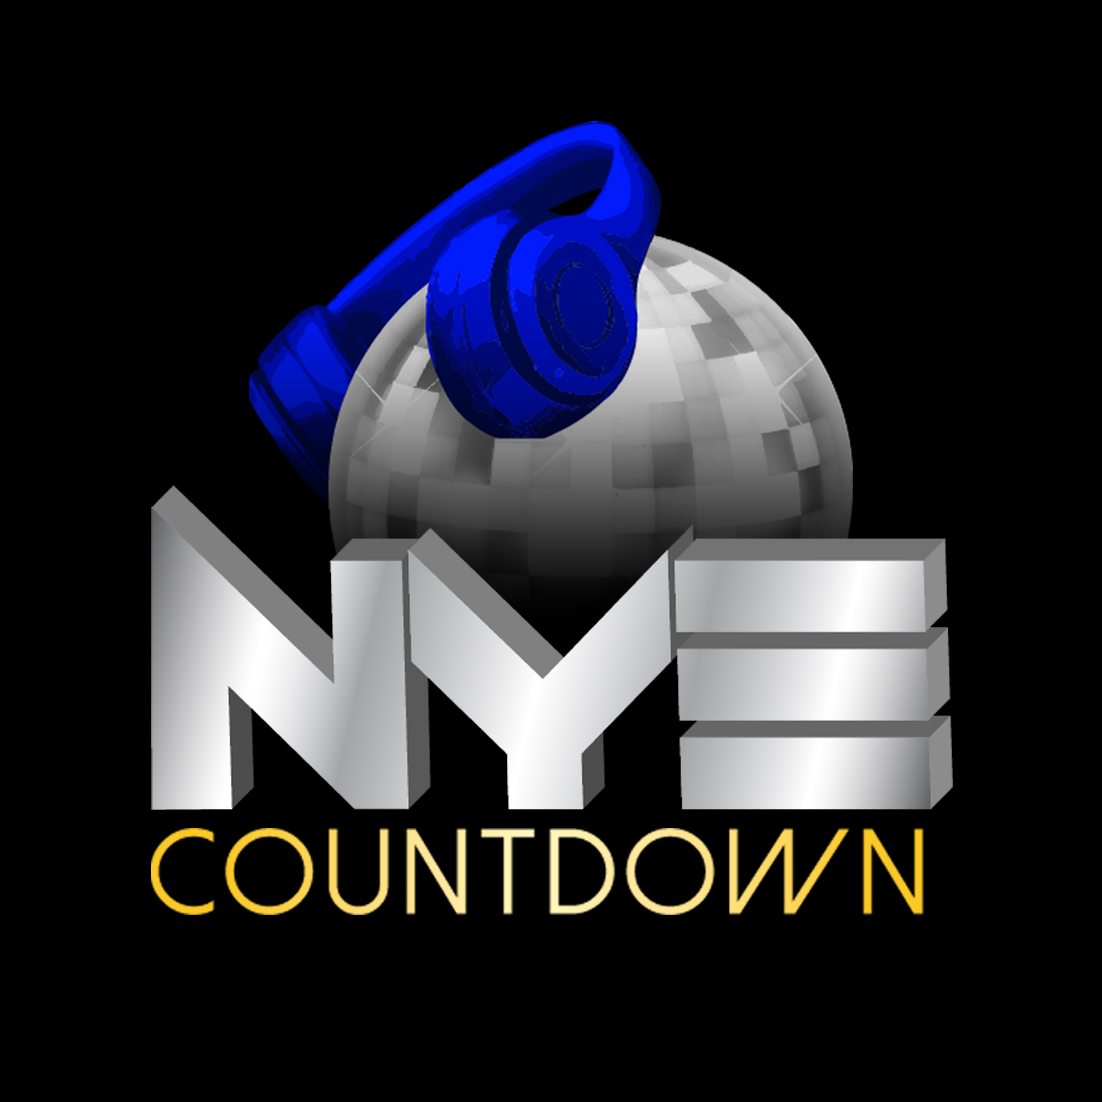 NYE Countdown.com